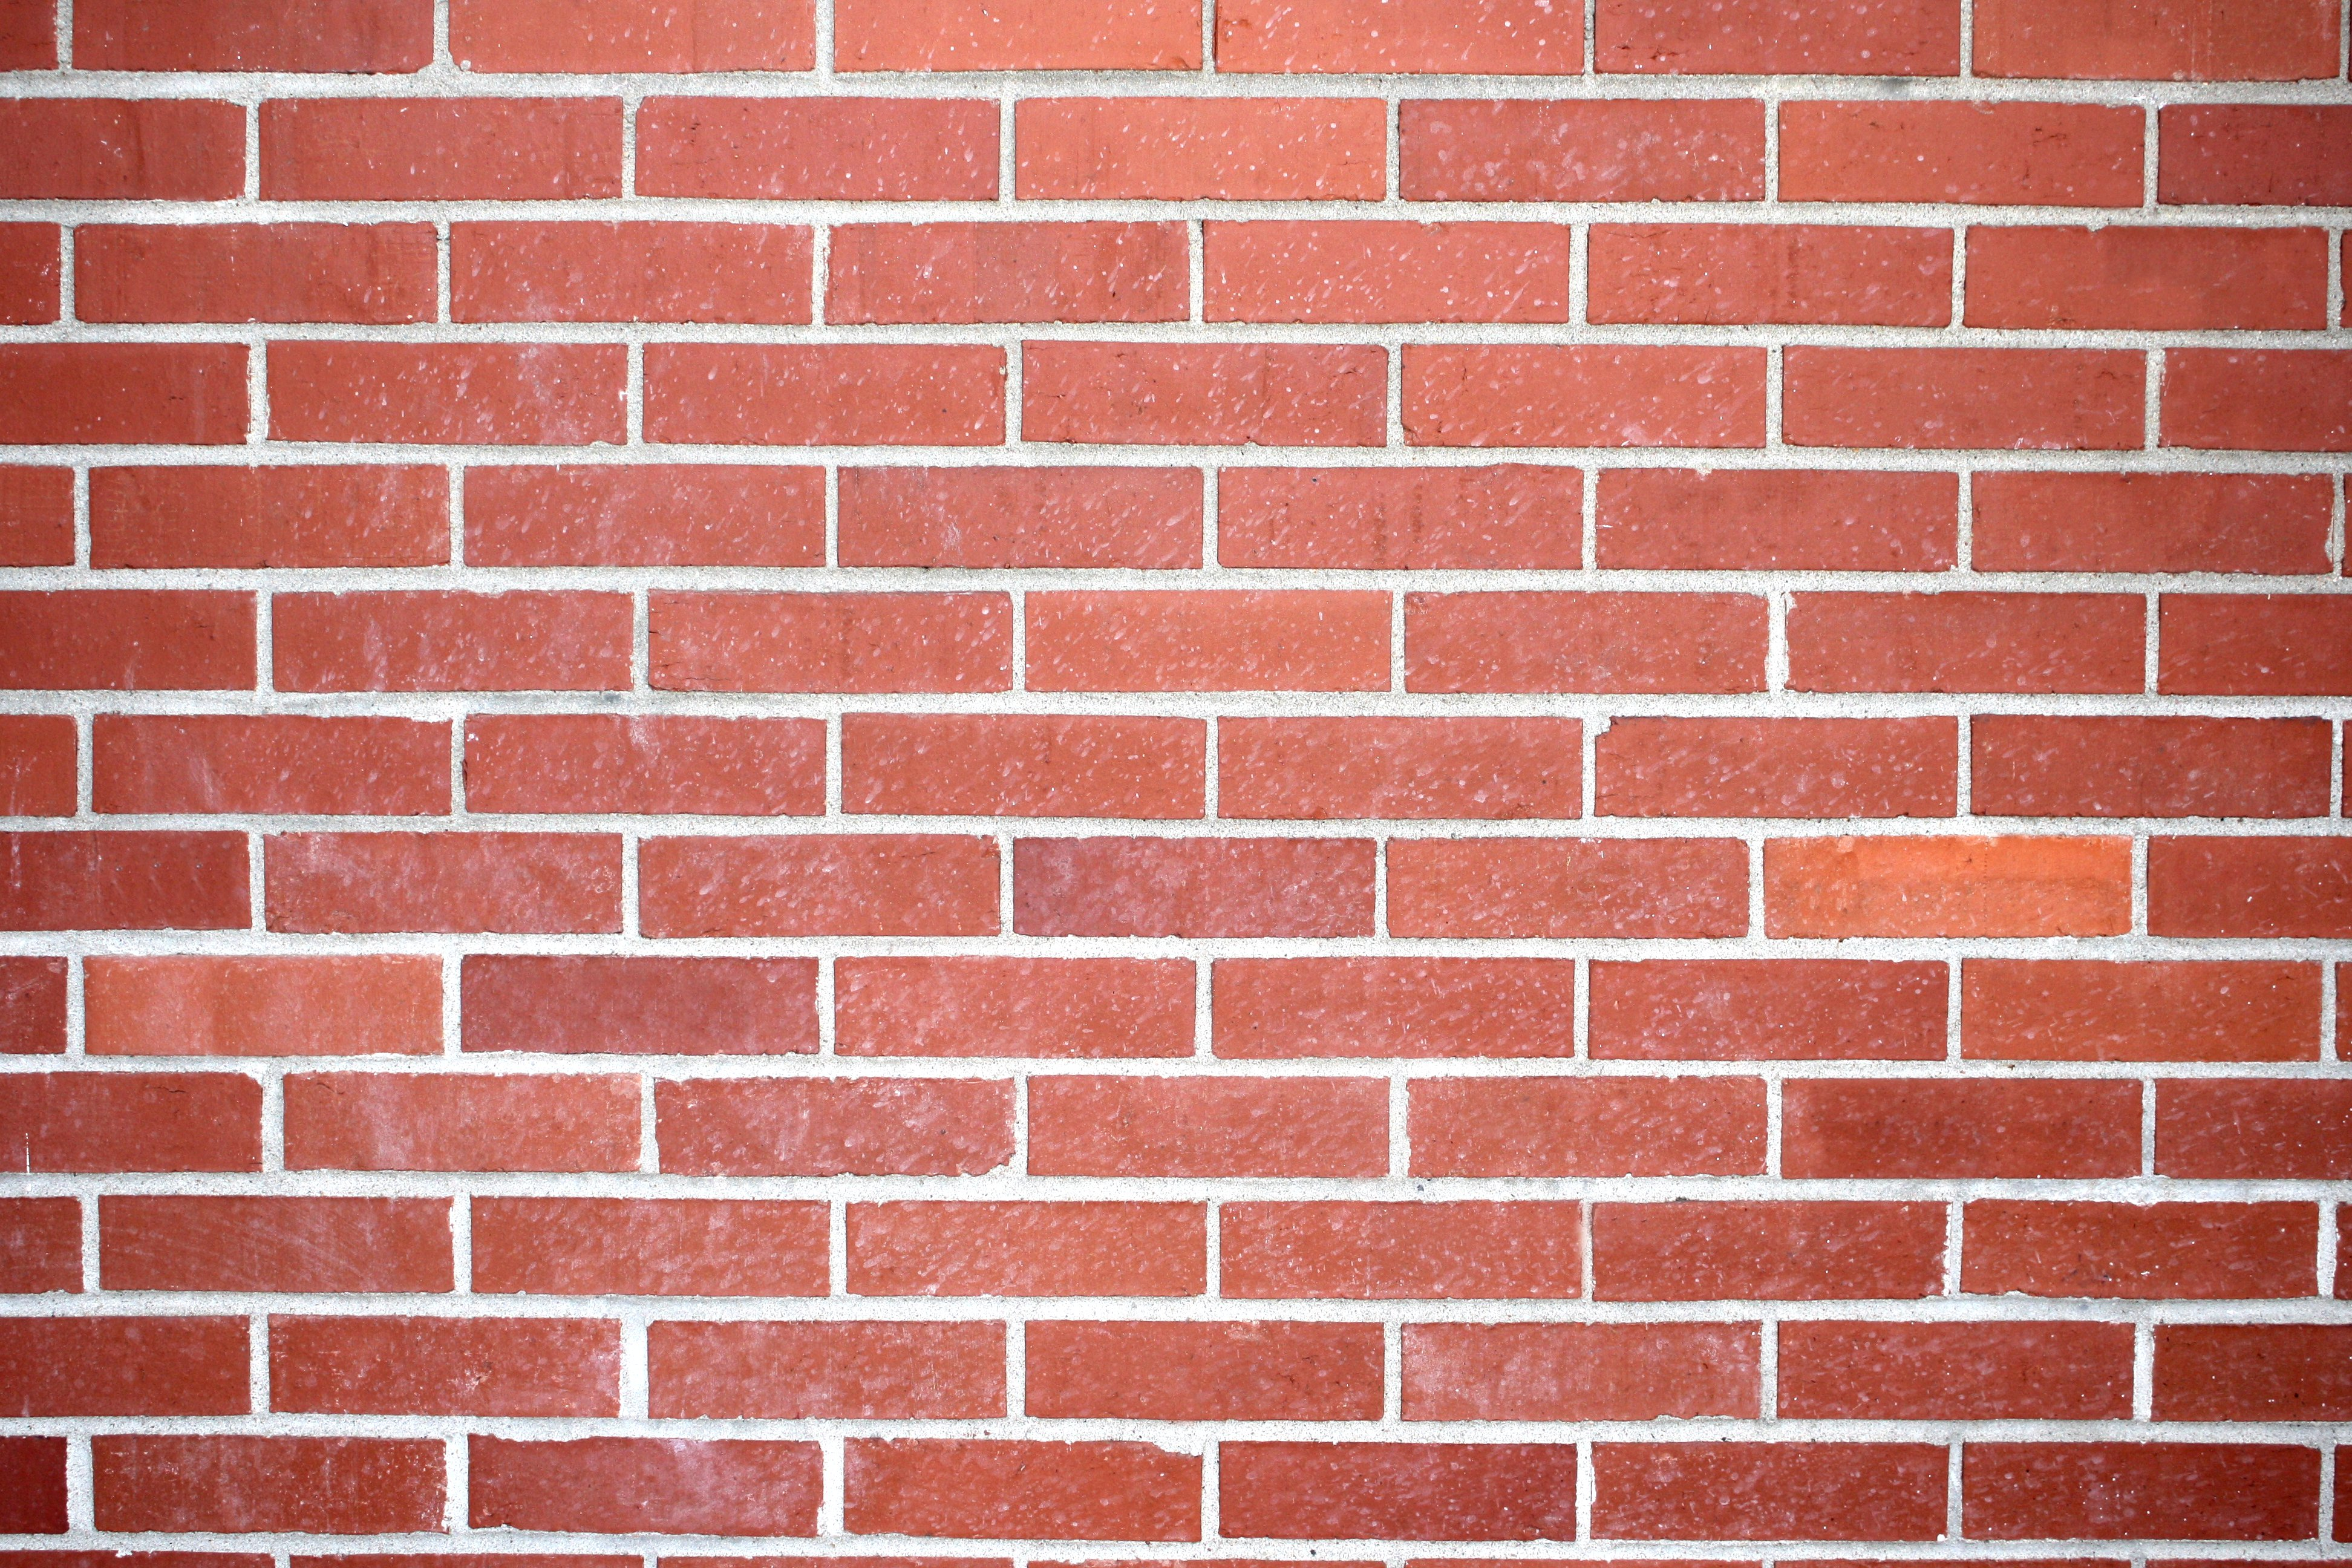 Wall wallpaper clipart jpg royalty free Brick Wall Background Clipart (111+ images in Collection) Page 2 jpg royalty free